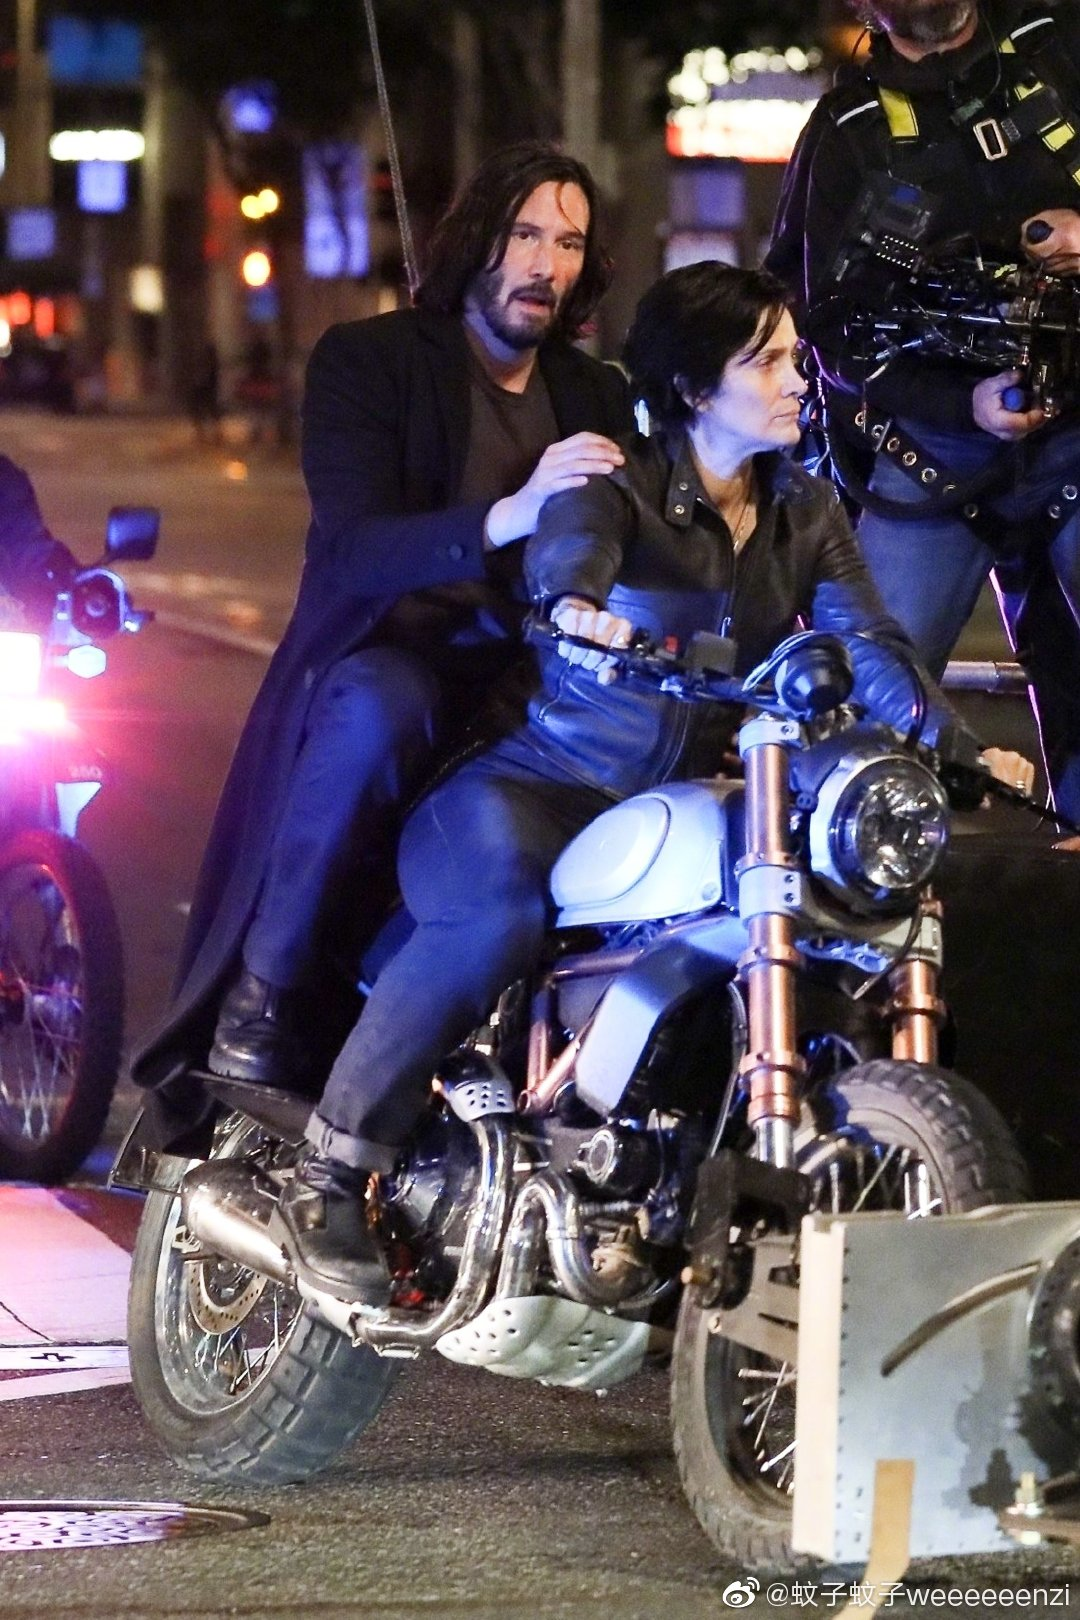 Matrix 4 Set Photo 11 Keanu Reeves Carrie Anne Moss